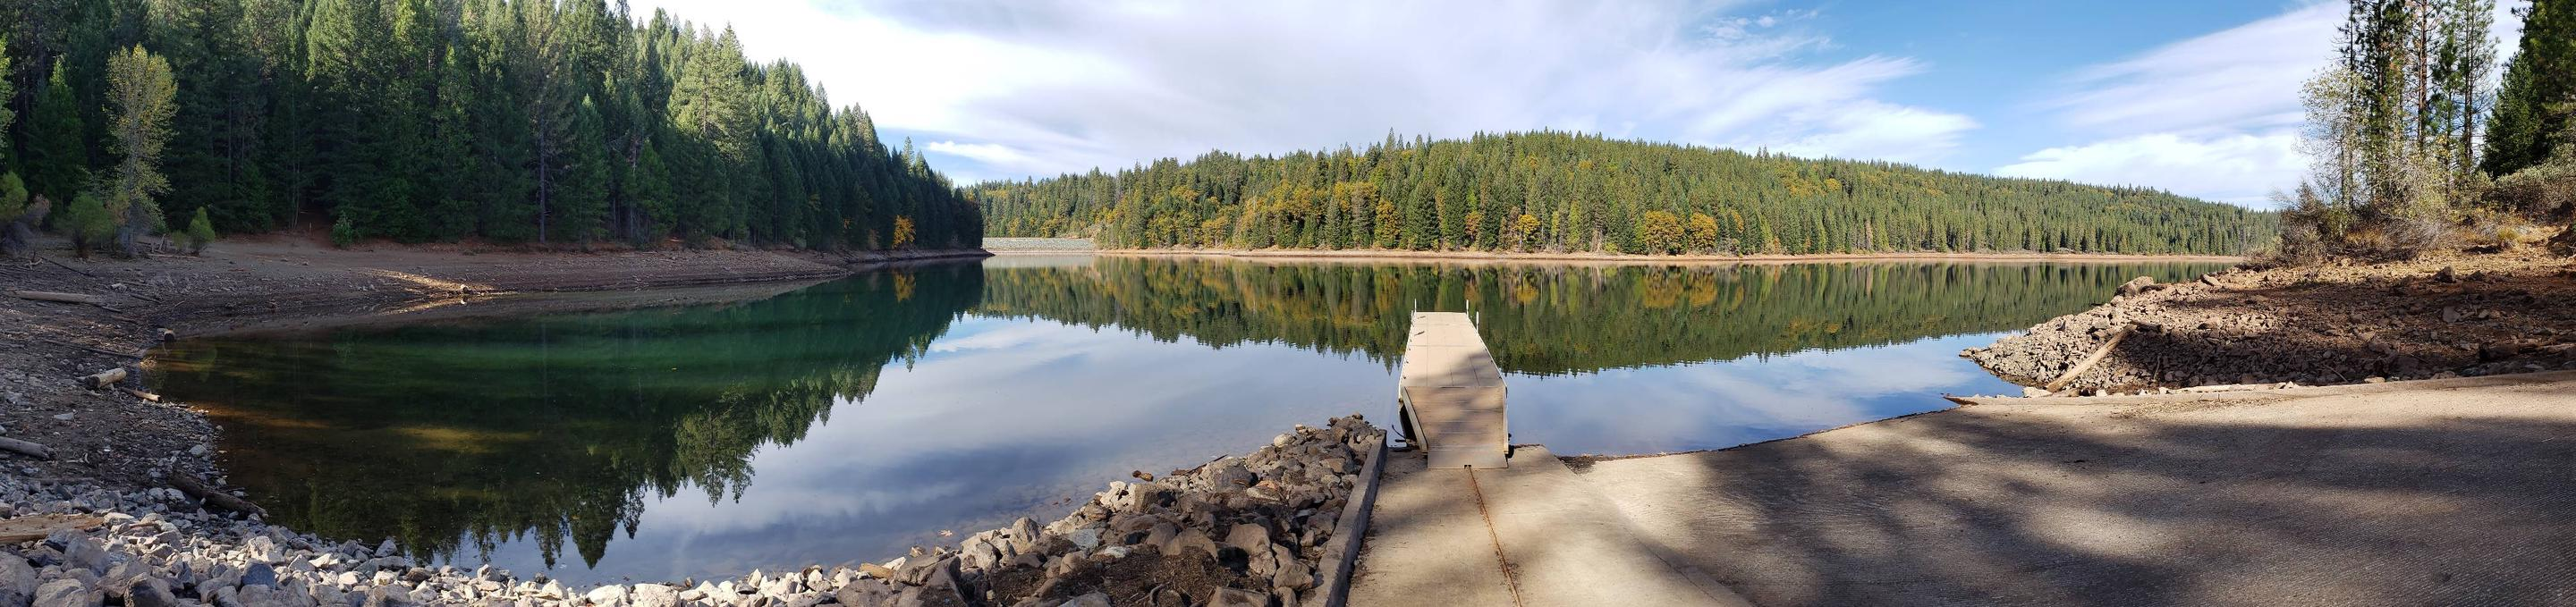 Sugar pine reservoir from the public boat ramp.